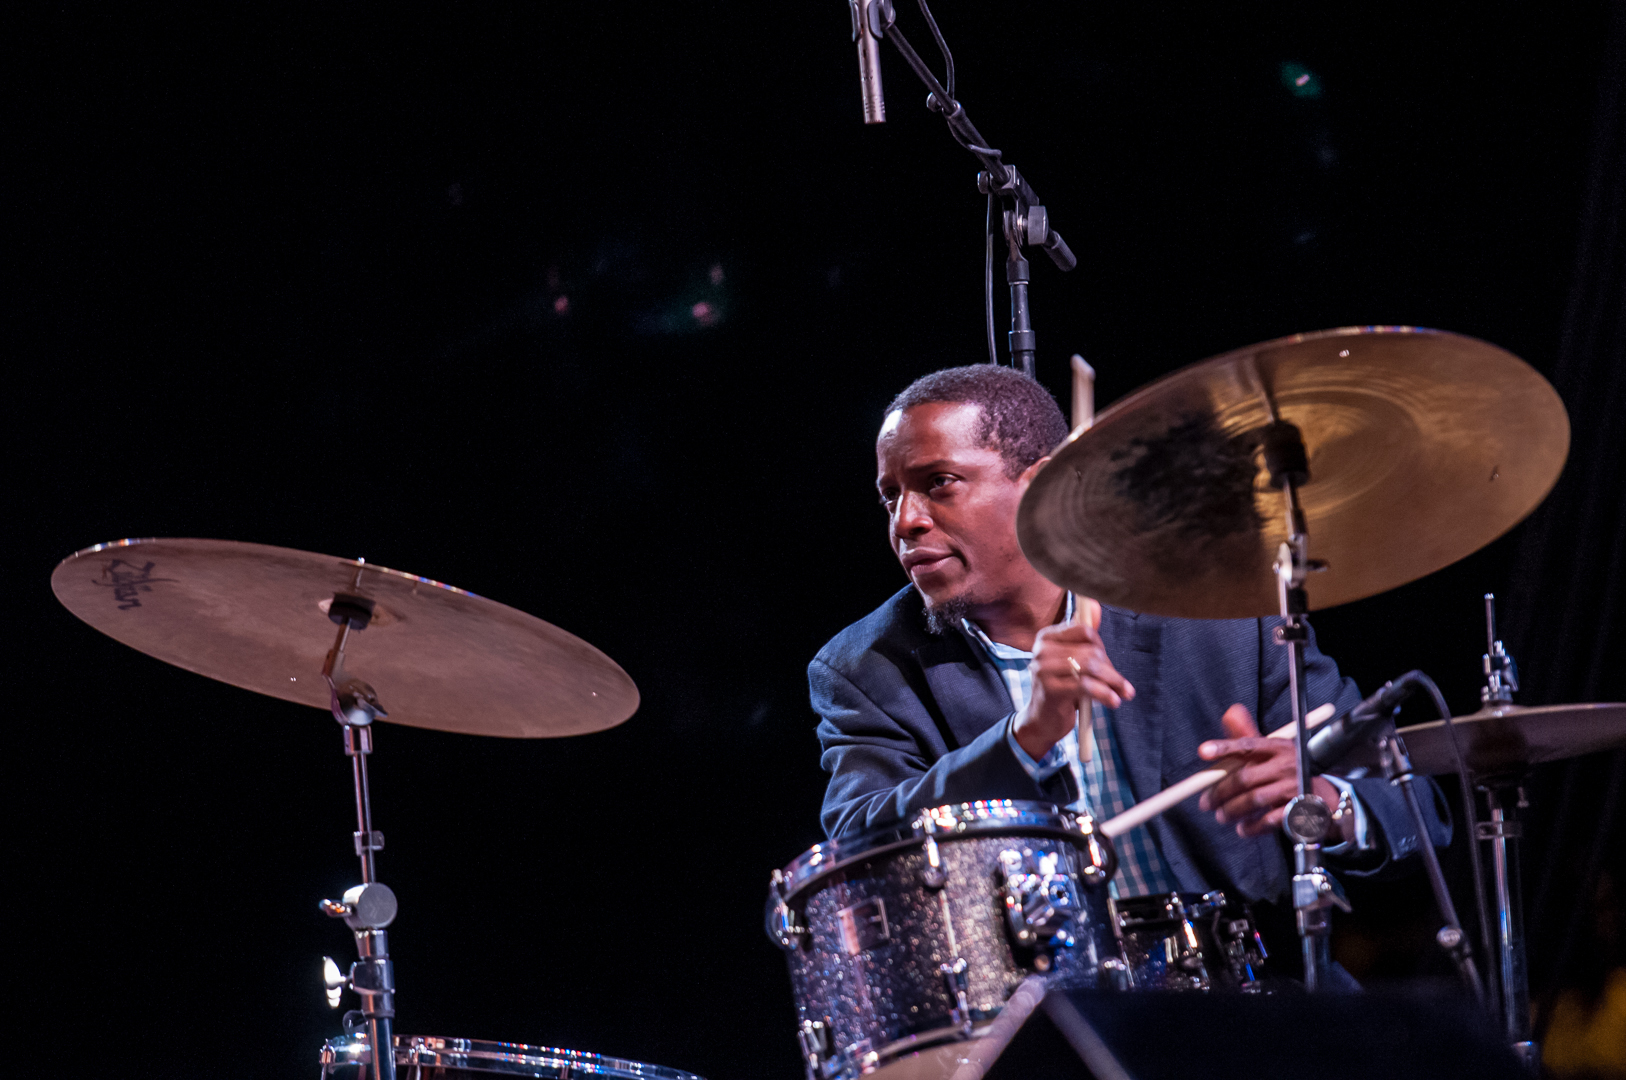 Francisco mela with the mccoy tyner quartet at the scottsdale performing arts center